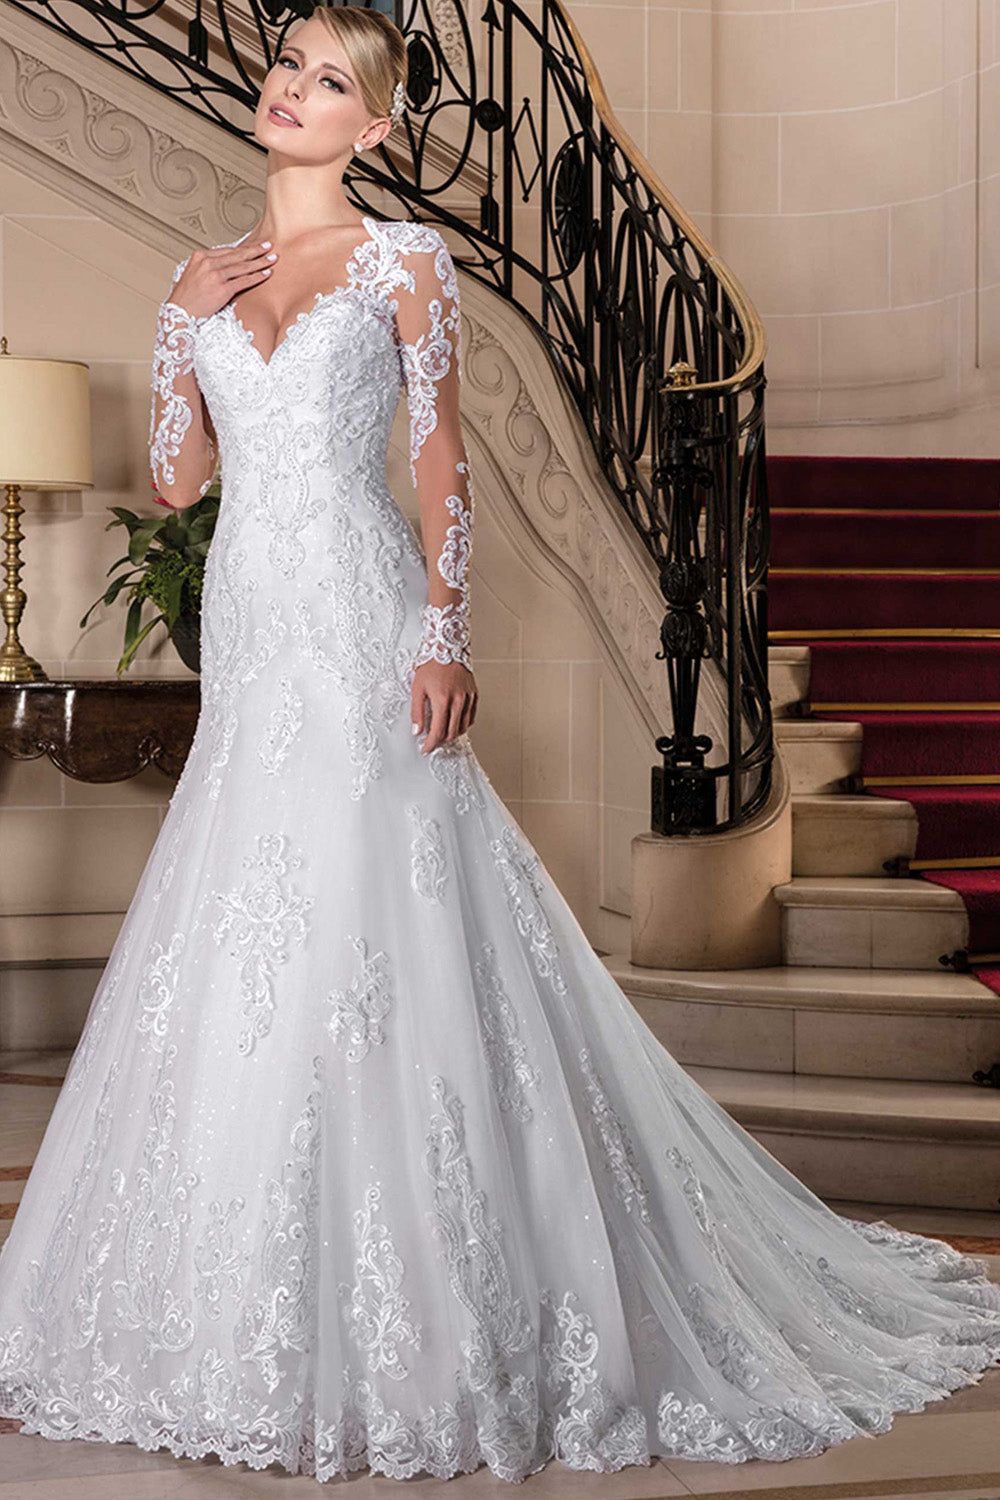 V-Neck Long Sleeves Wedding Dresses with Lace Appliques